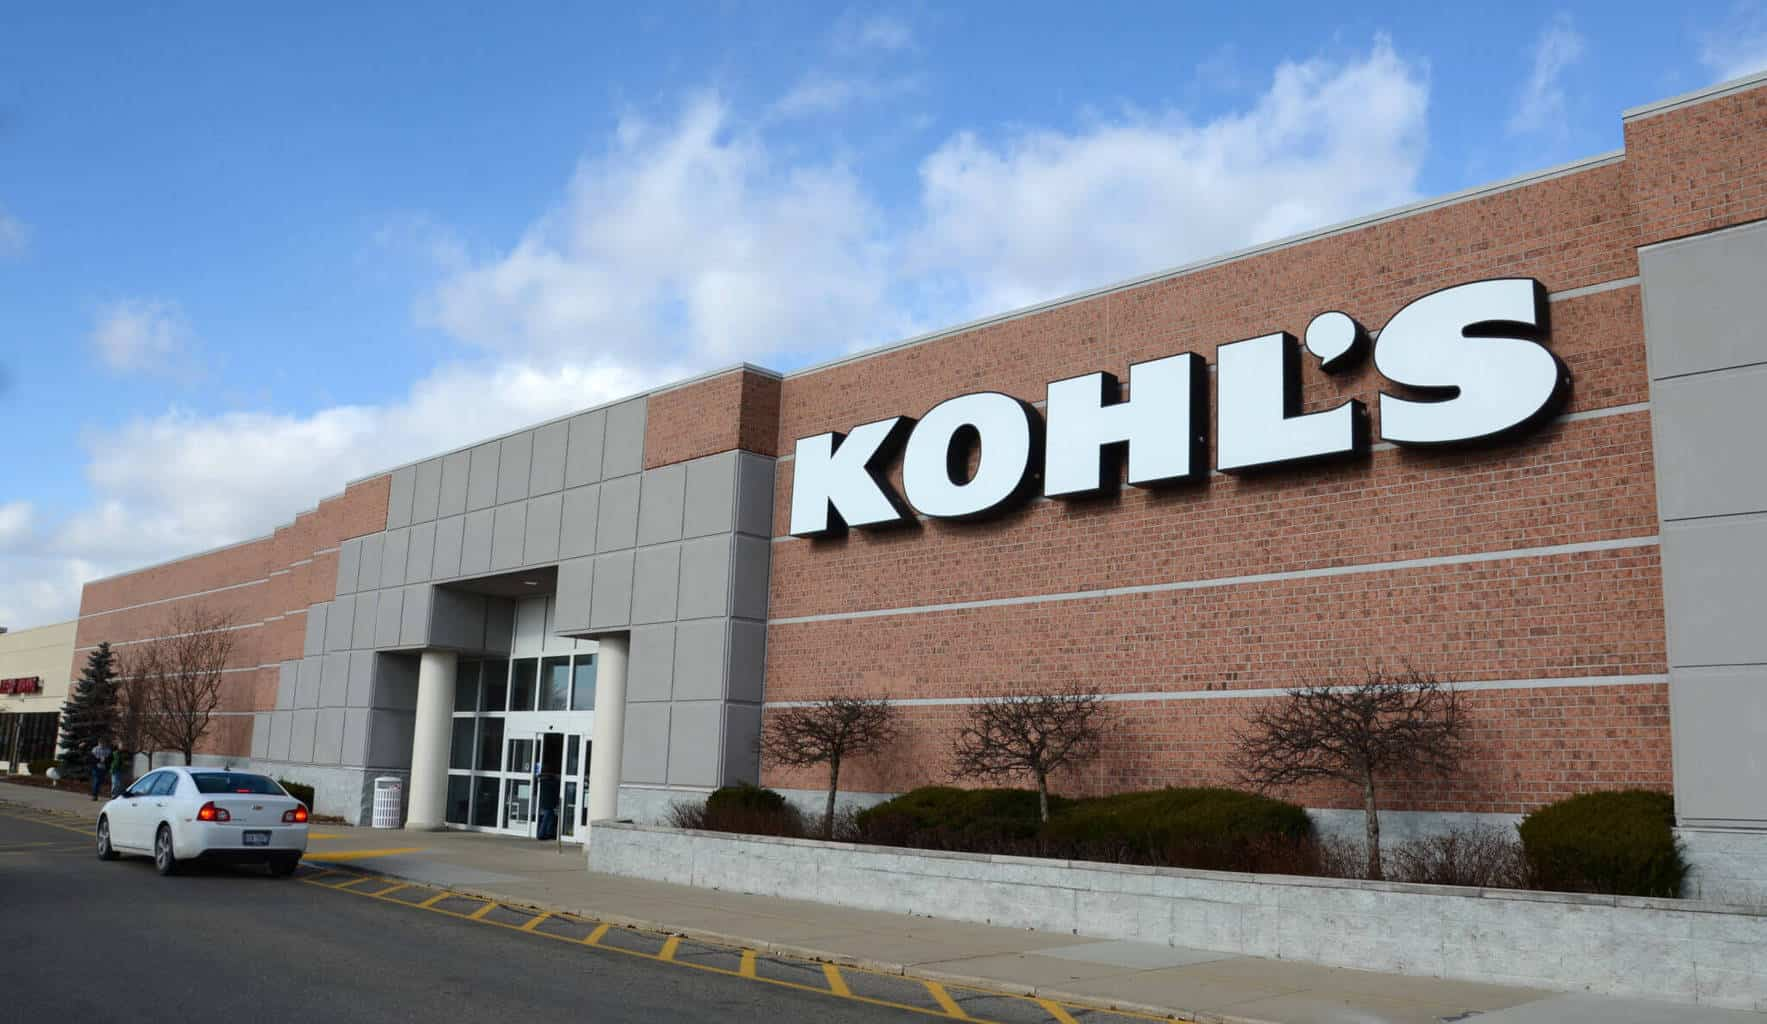 Kohl's New Partnerships and Programs Are Proving Successful as Shares Go Up